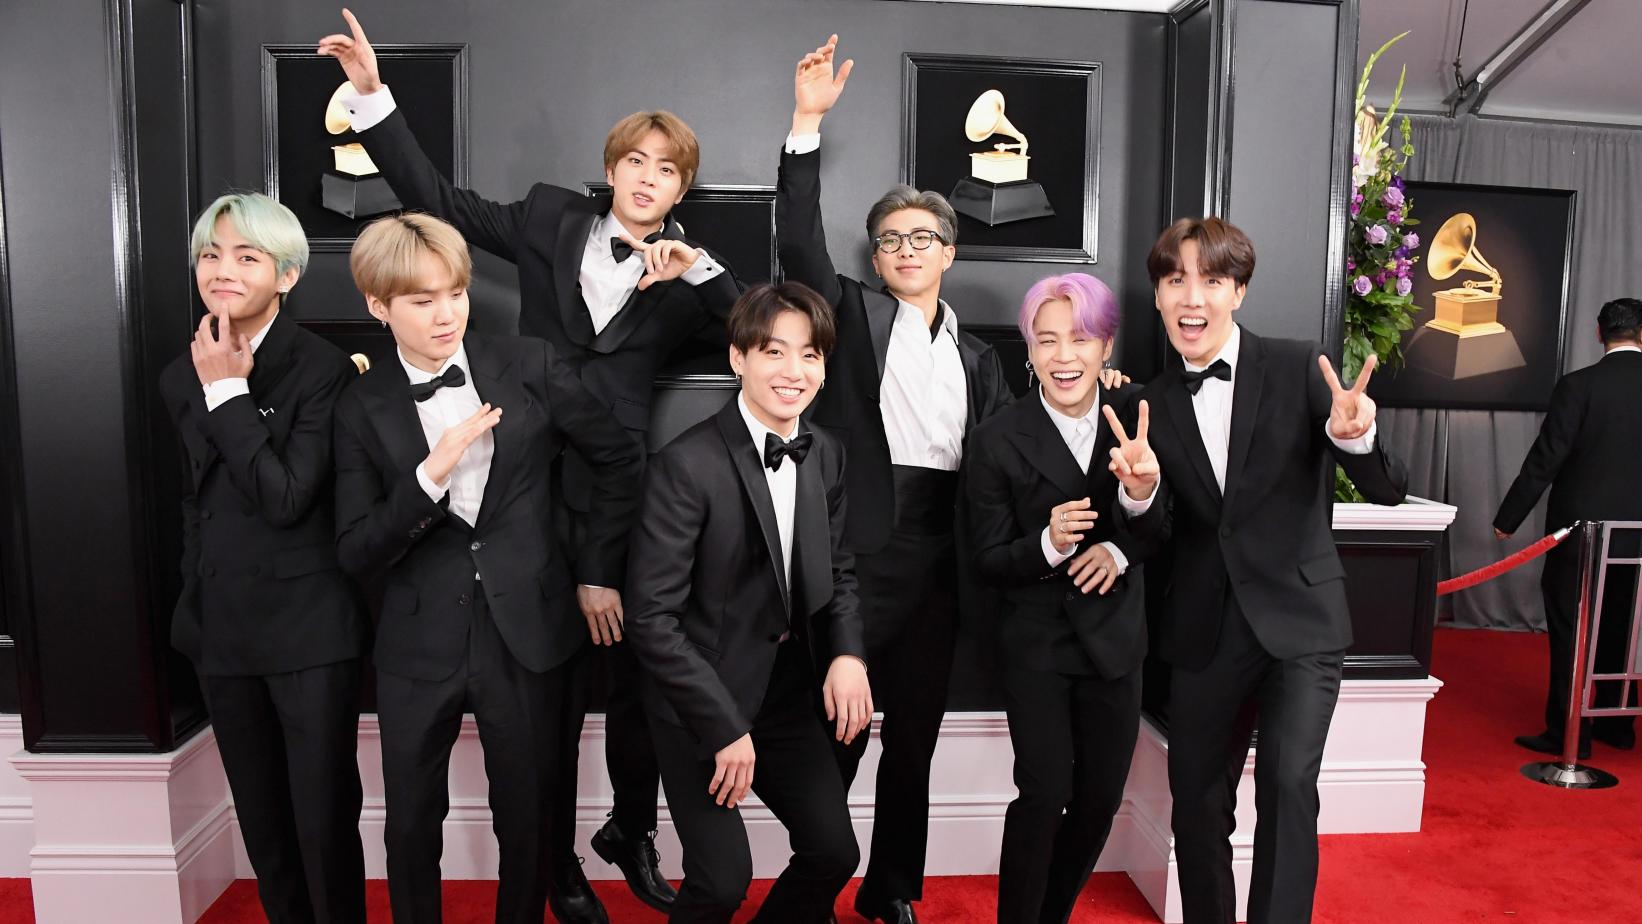 Photo of BTS Pecah Rekod Lagi, Dynamite Lagu No. 1 Carta Billboard AS